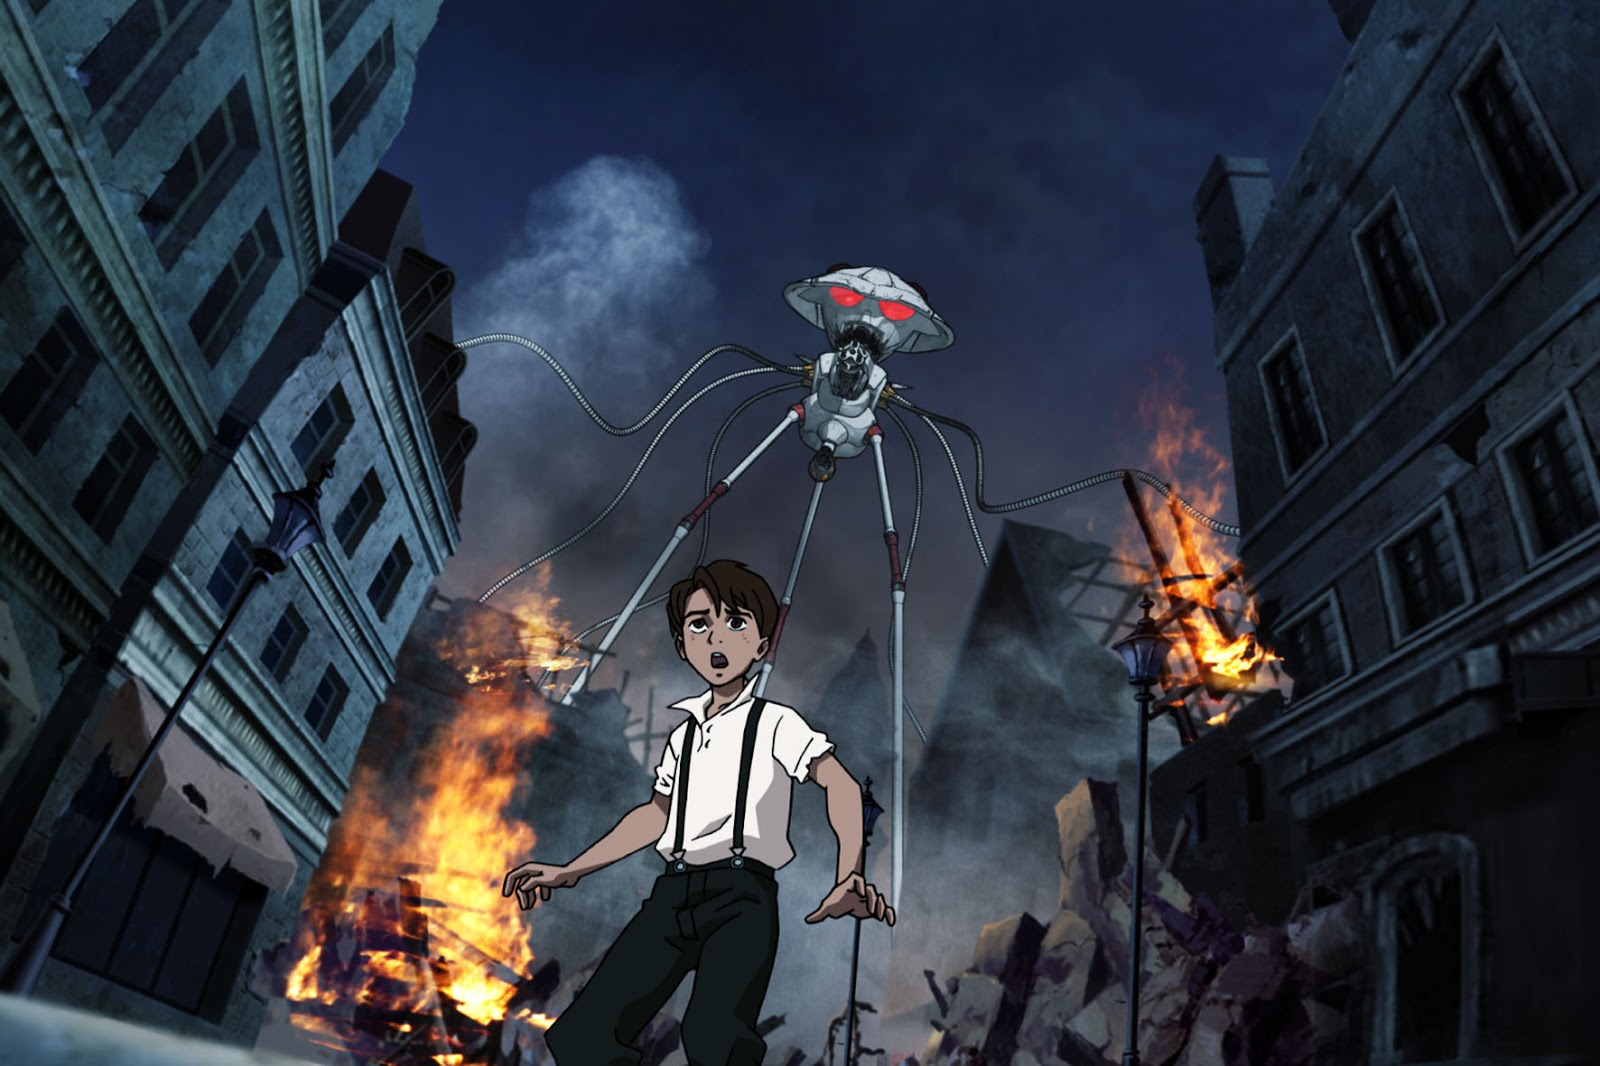 You heard of this movie its because of the news that war of the worlds